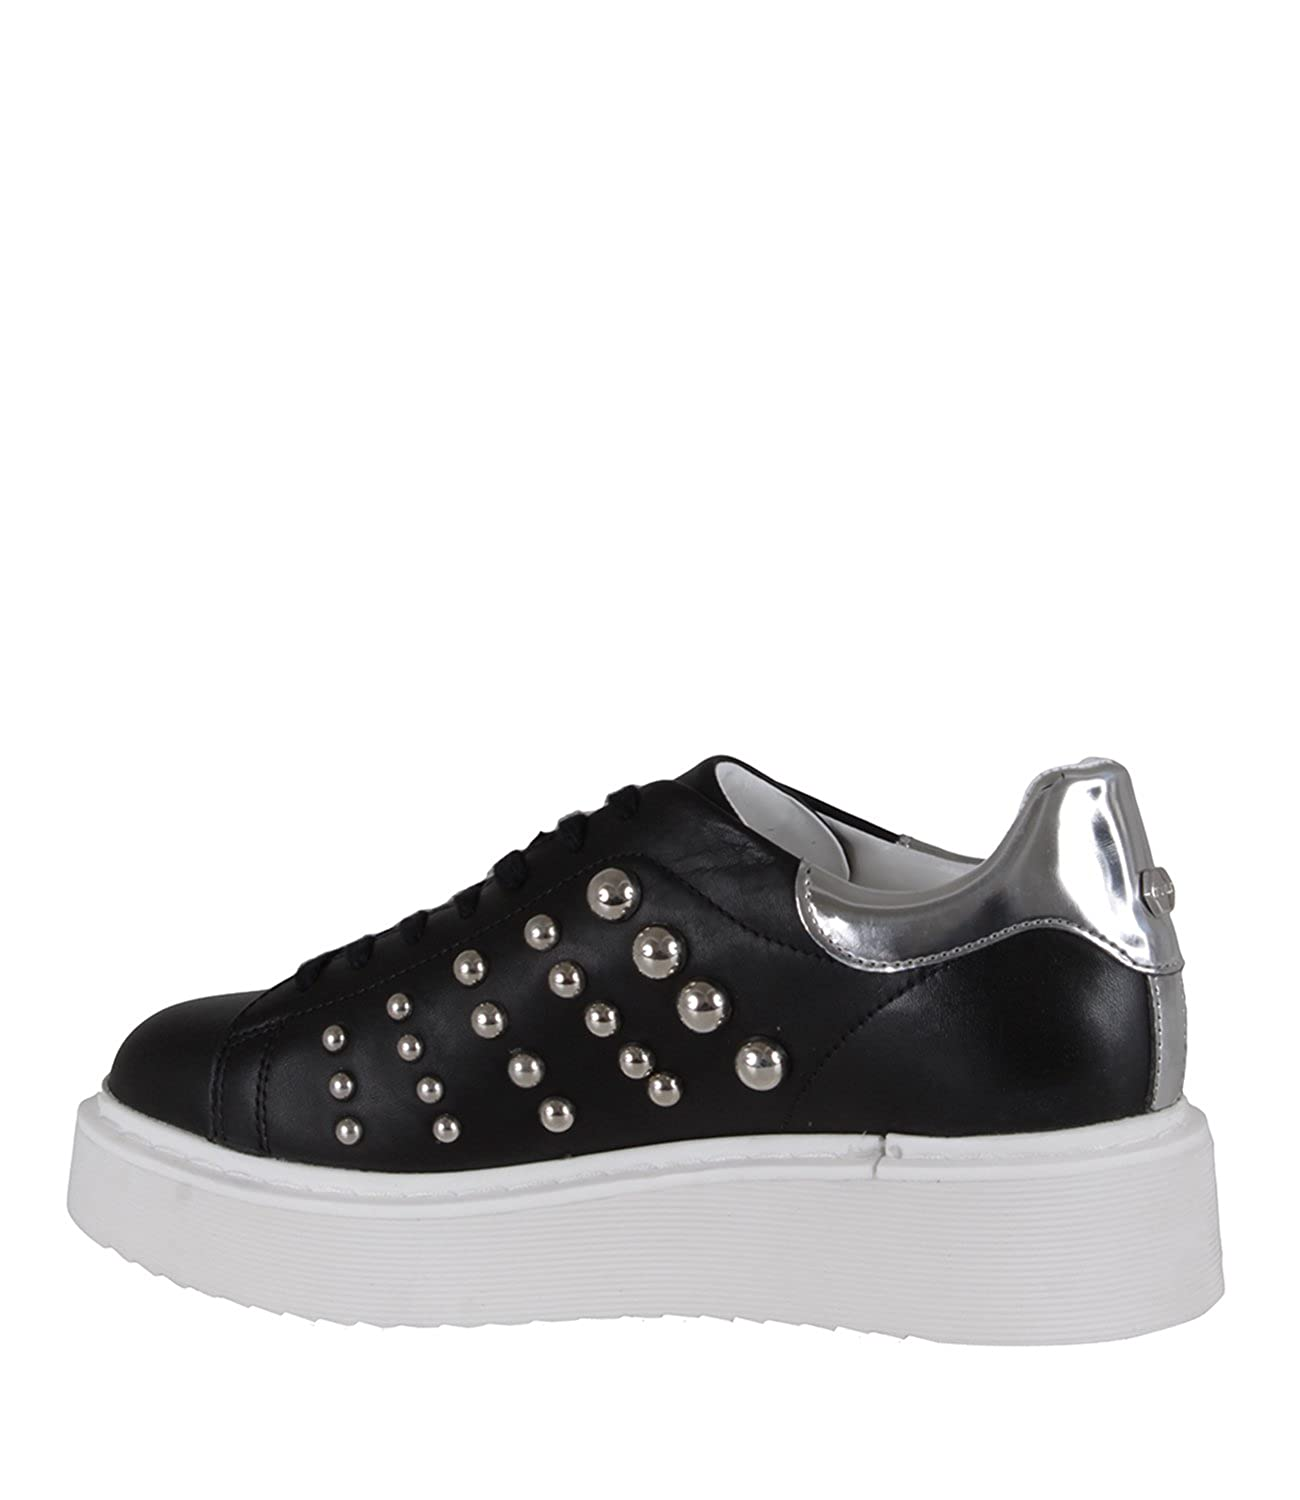 Cult Sneakers Donna Eagles Low 1452 Mod. CLE102959 39: Amazon.co.uk:  Clothing